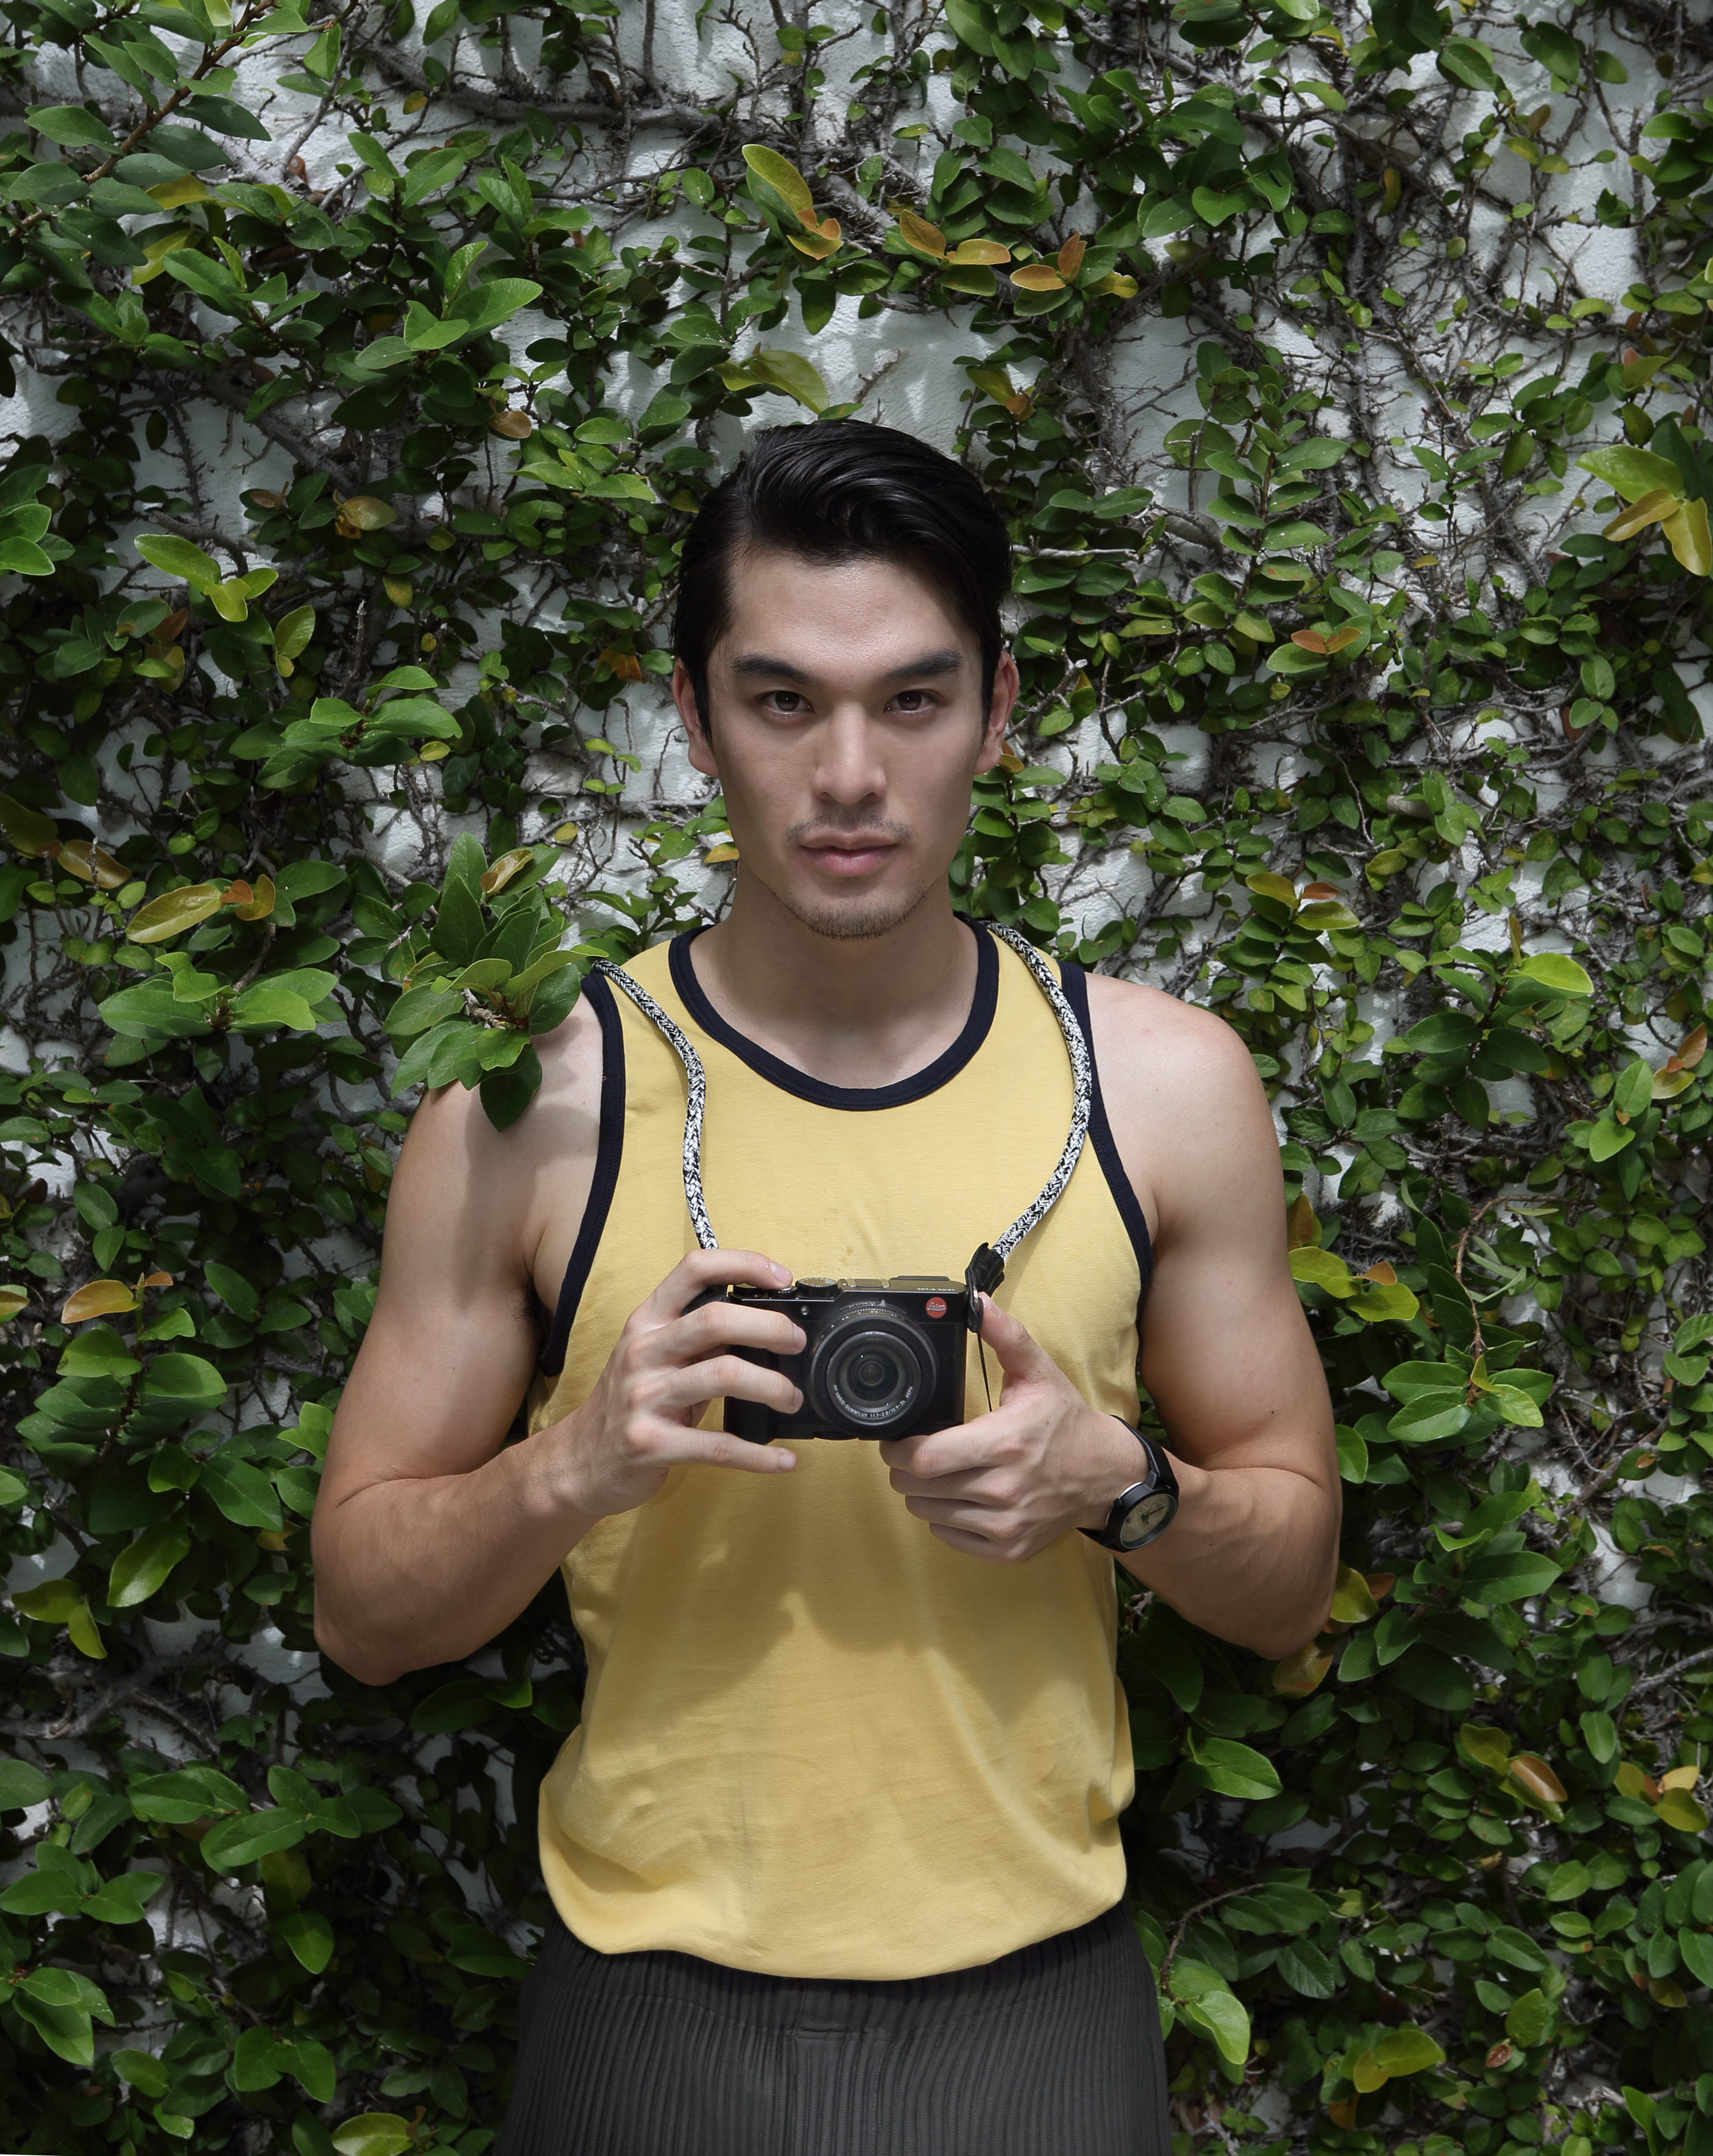 tank top : NOXX / pant : Issey Miyake Homme Pliss / watch : FORREST / camera : Leica